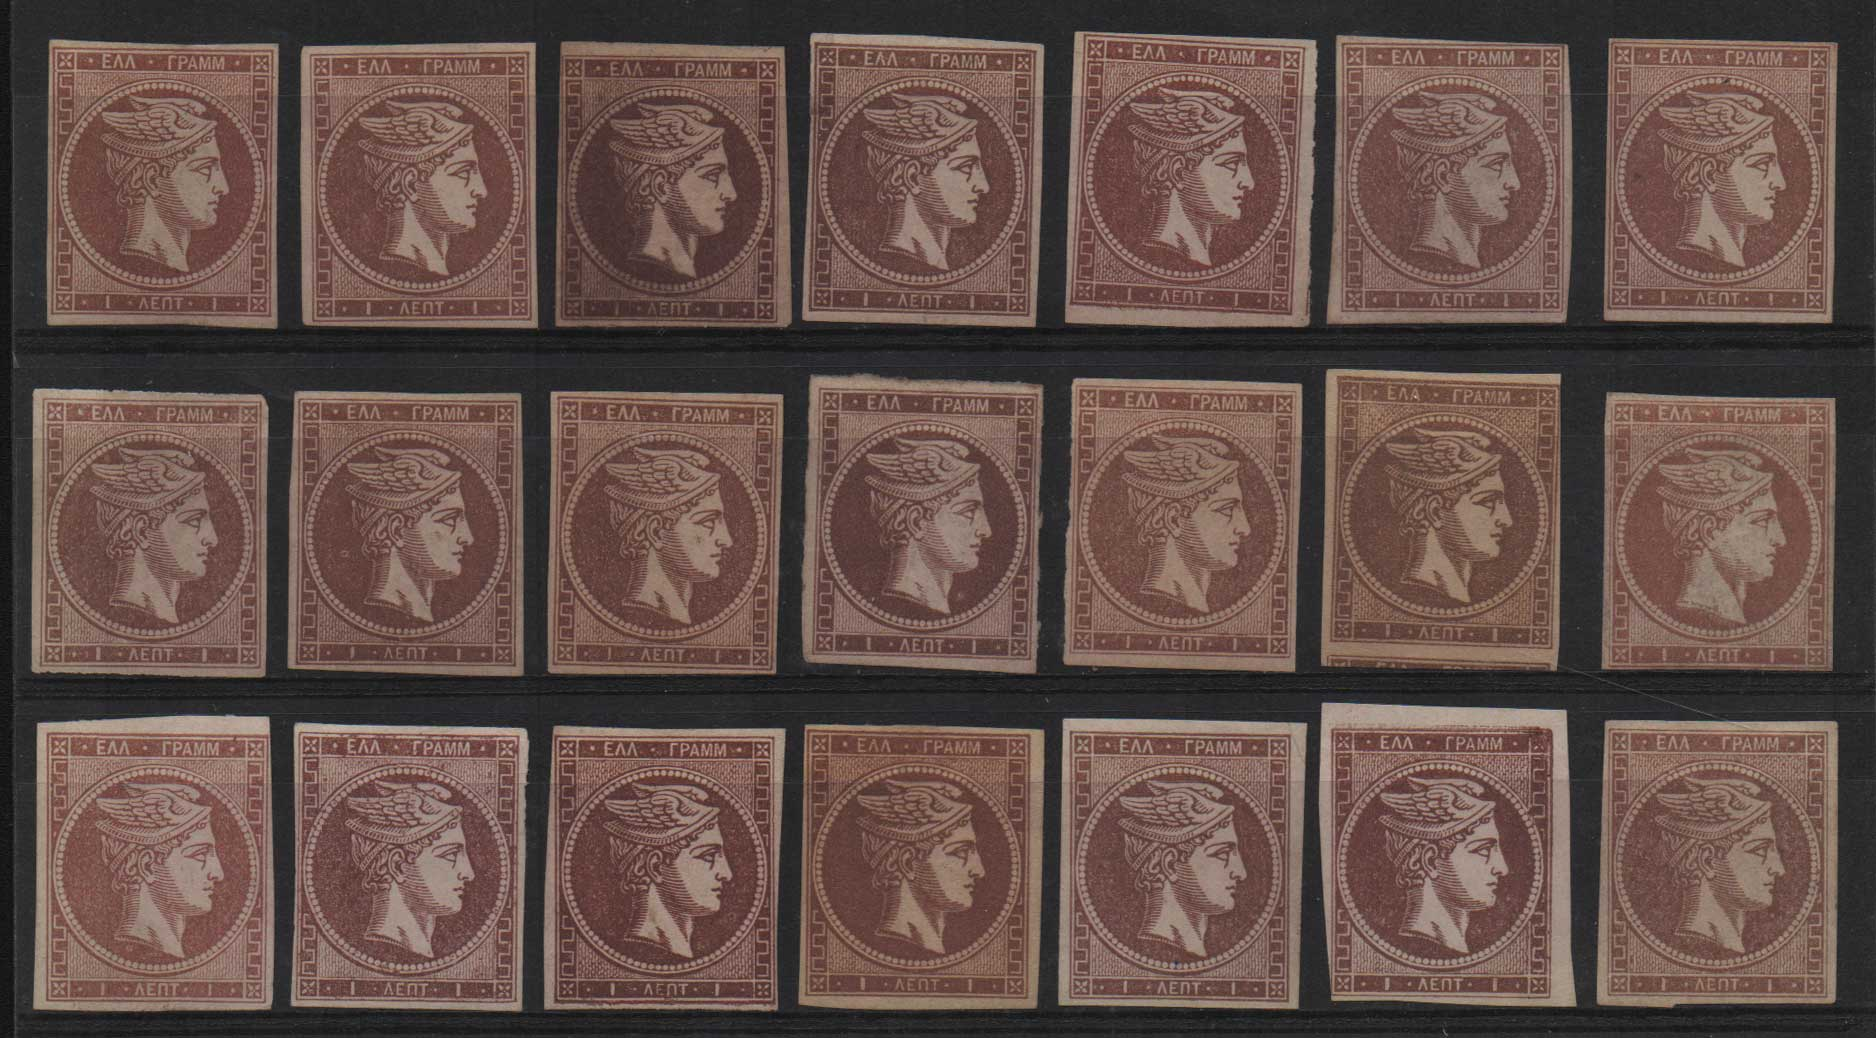 Lot 11 - -  LARGE HERMES HEAD large hermes head -  Athens Auctions Public Auction 69 General Stamp Sale